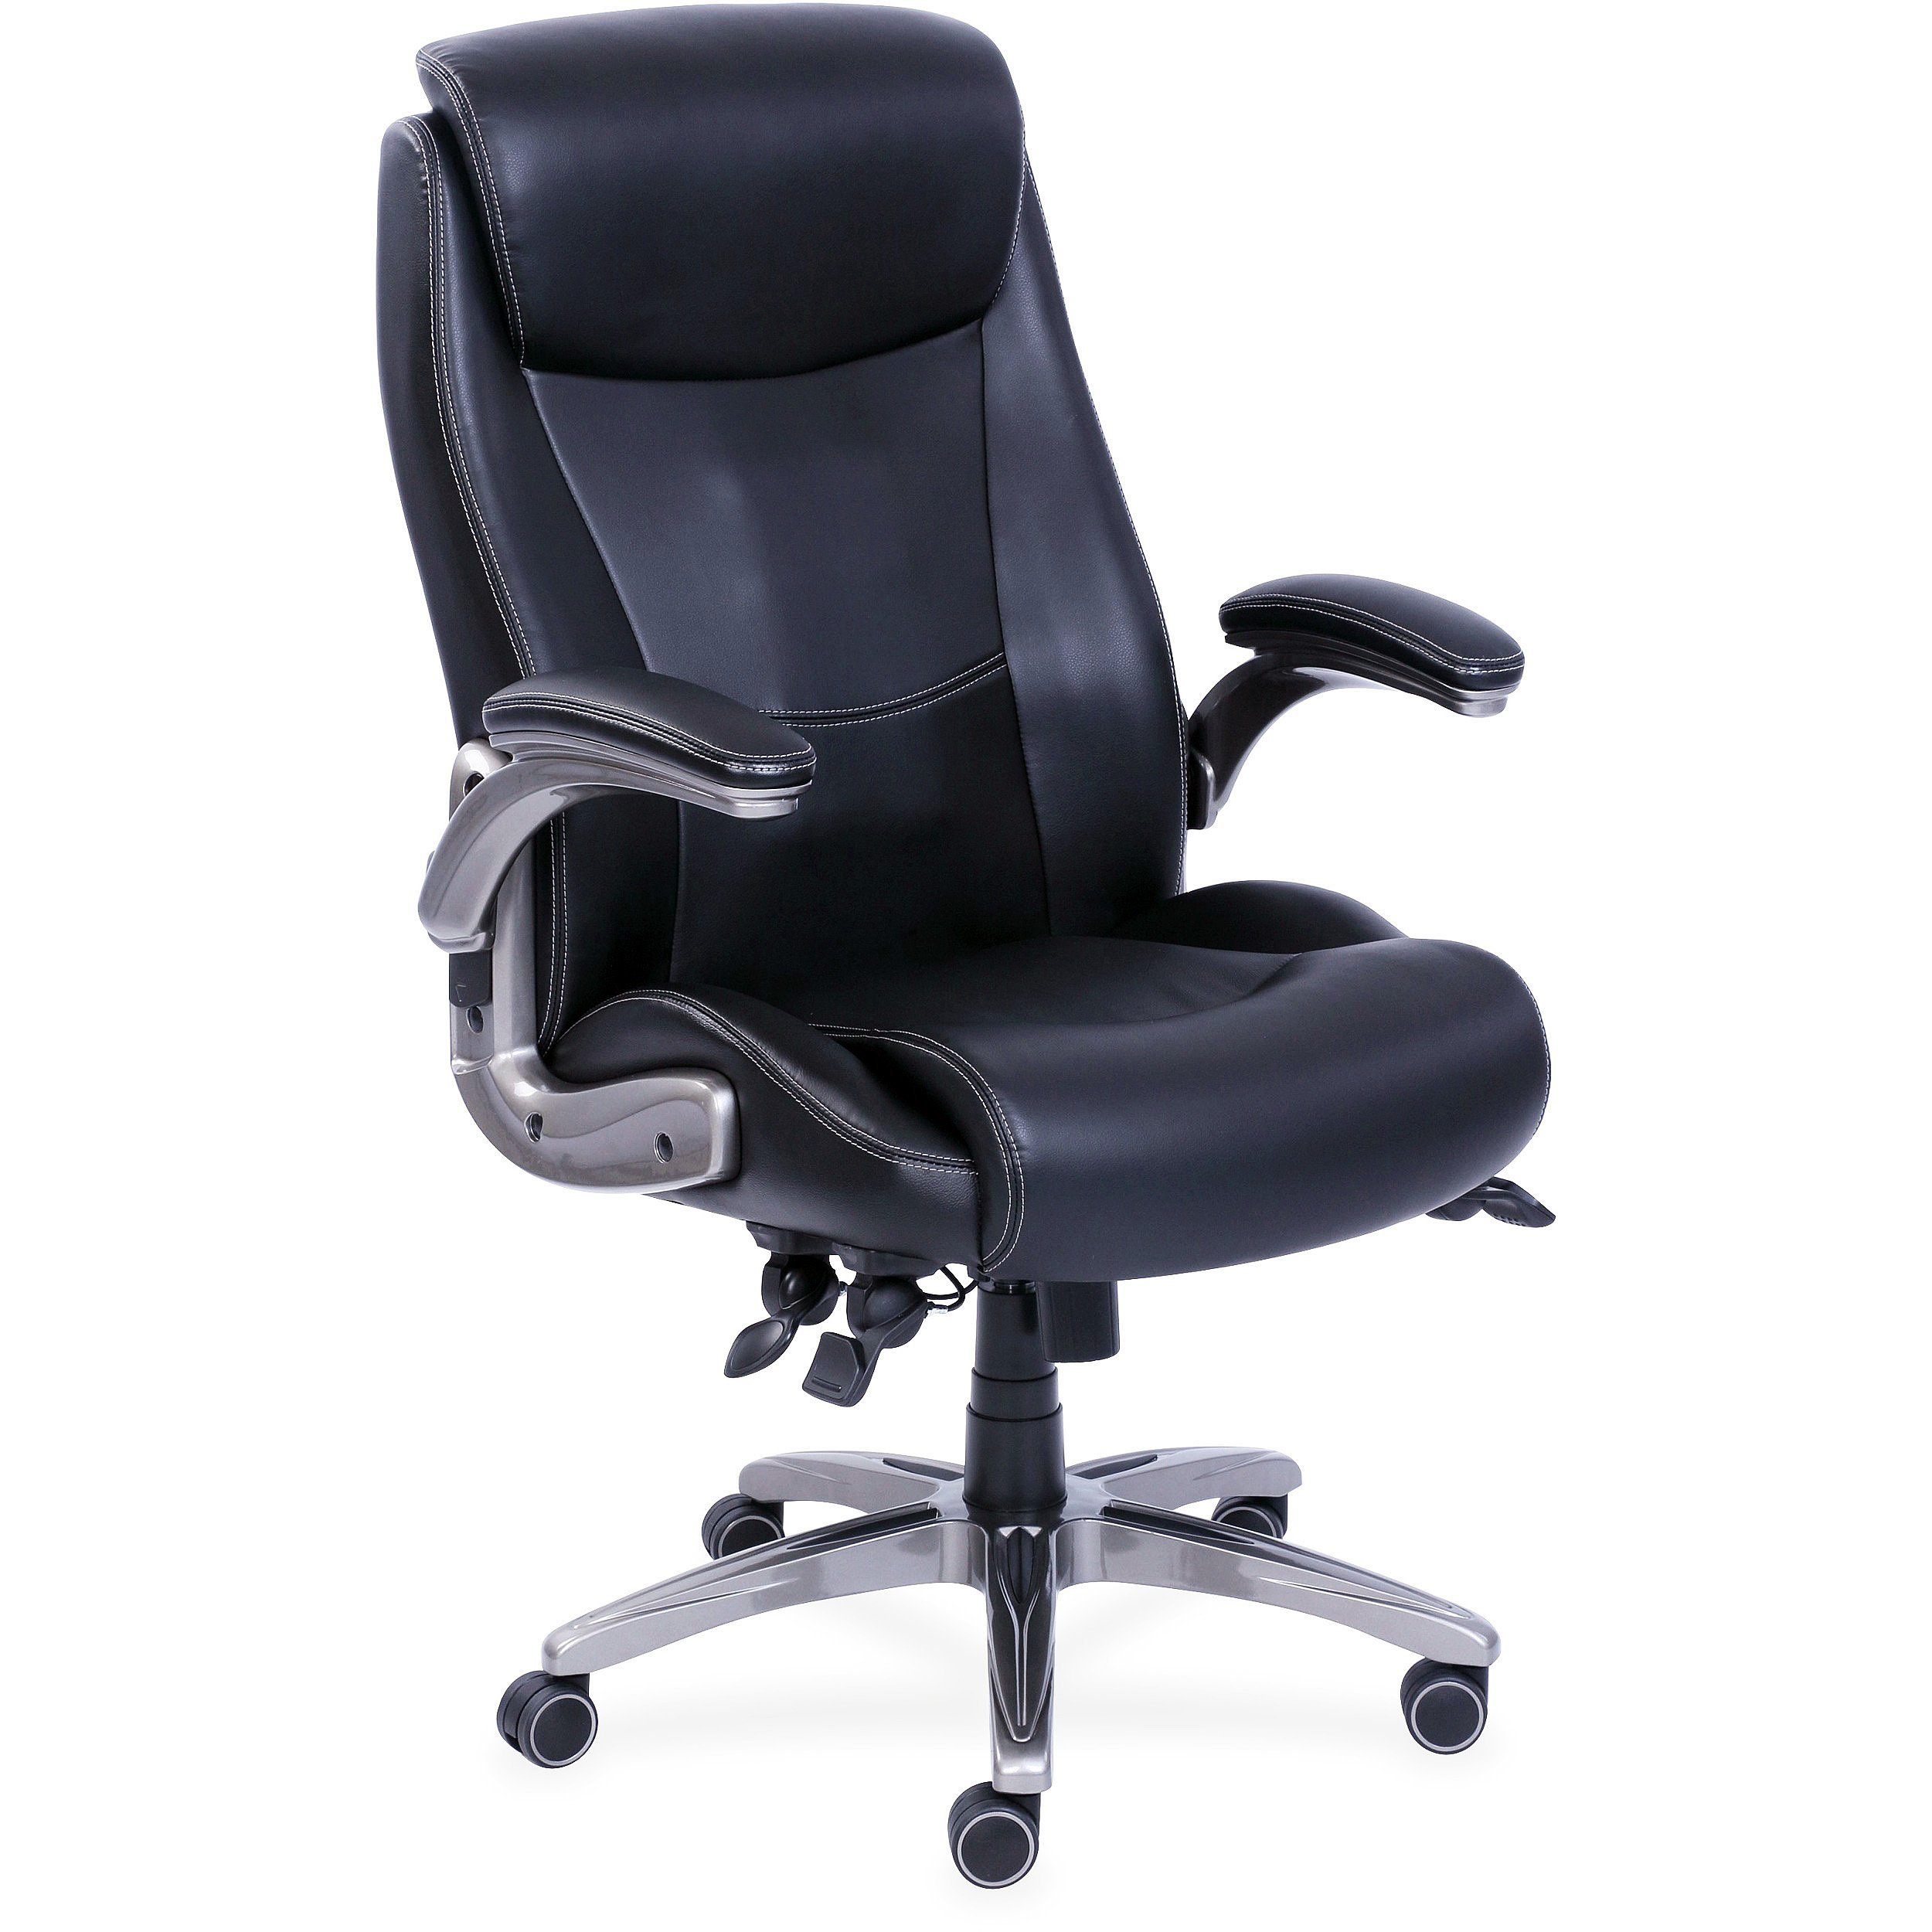 Lorell Revive Leather Executive Chair, Black